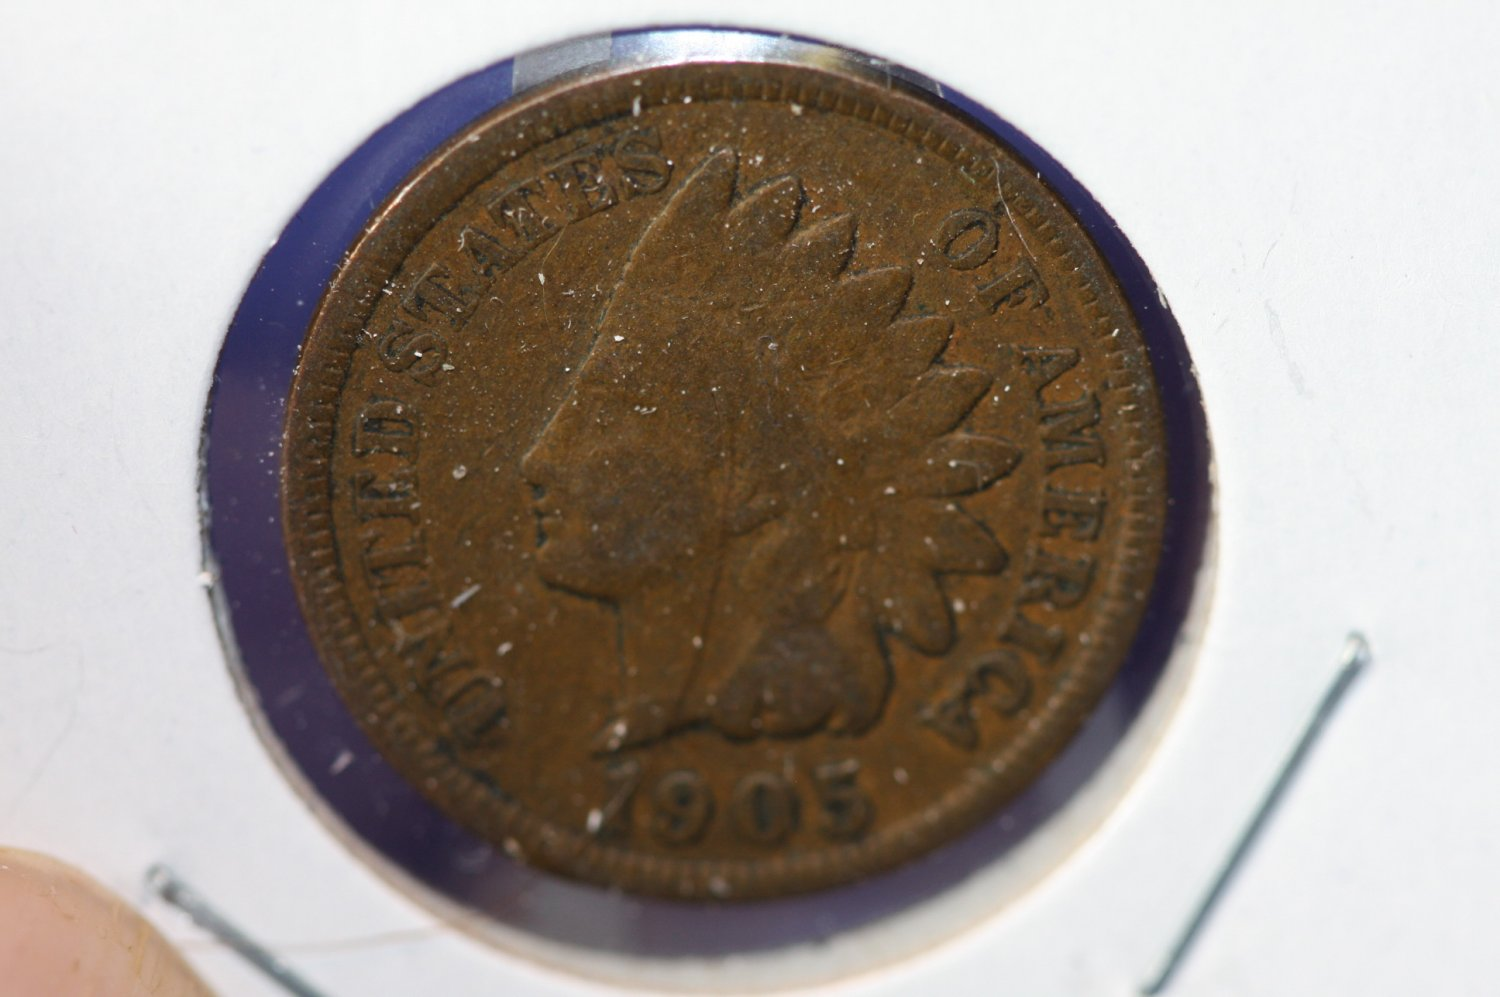 1905 Indian Head Penny - Average Circulated Coin - #4781